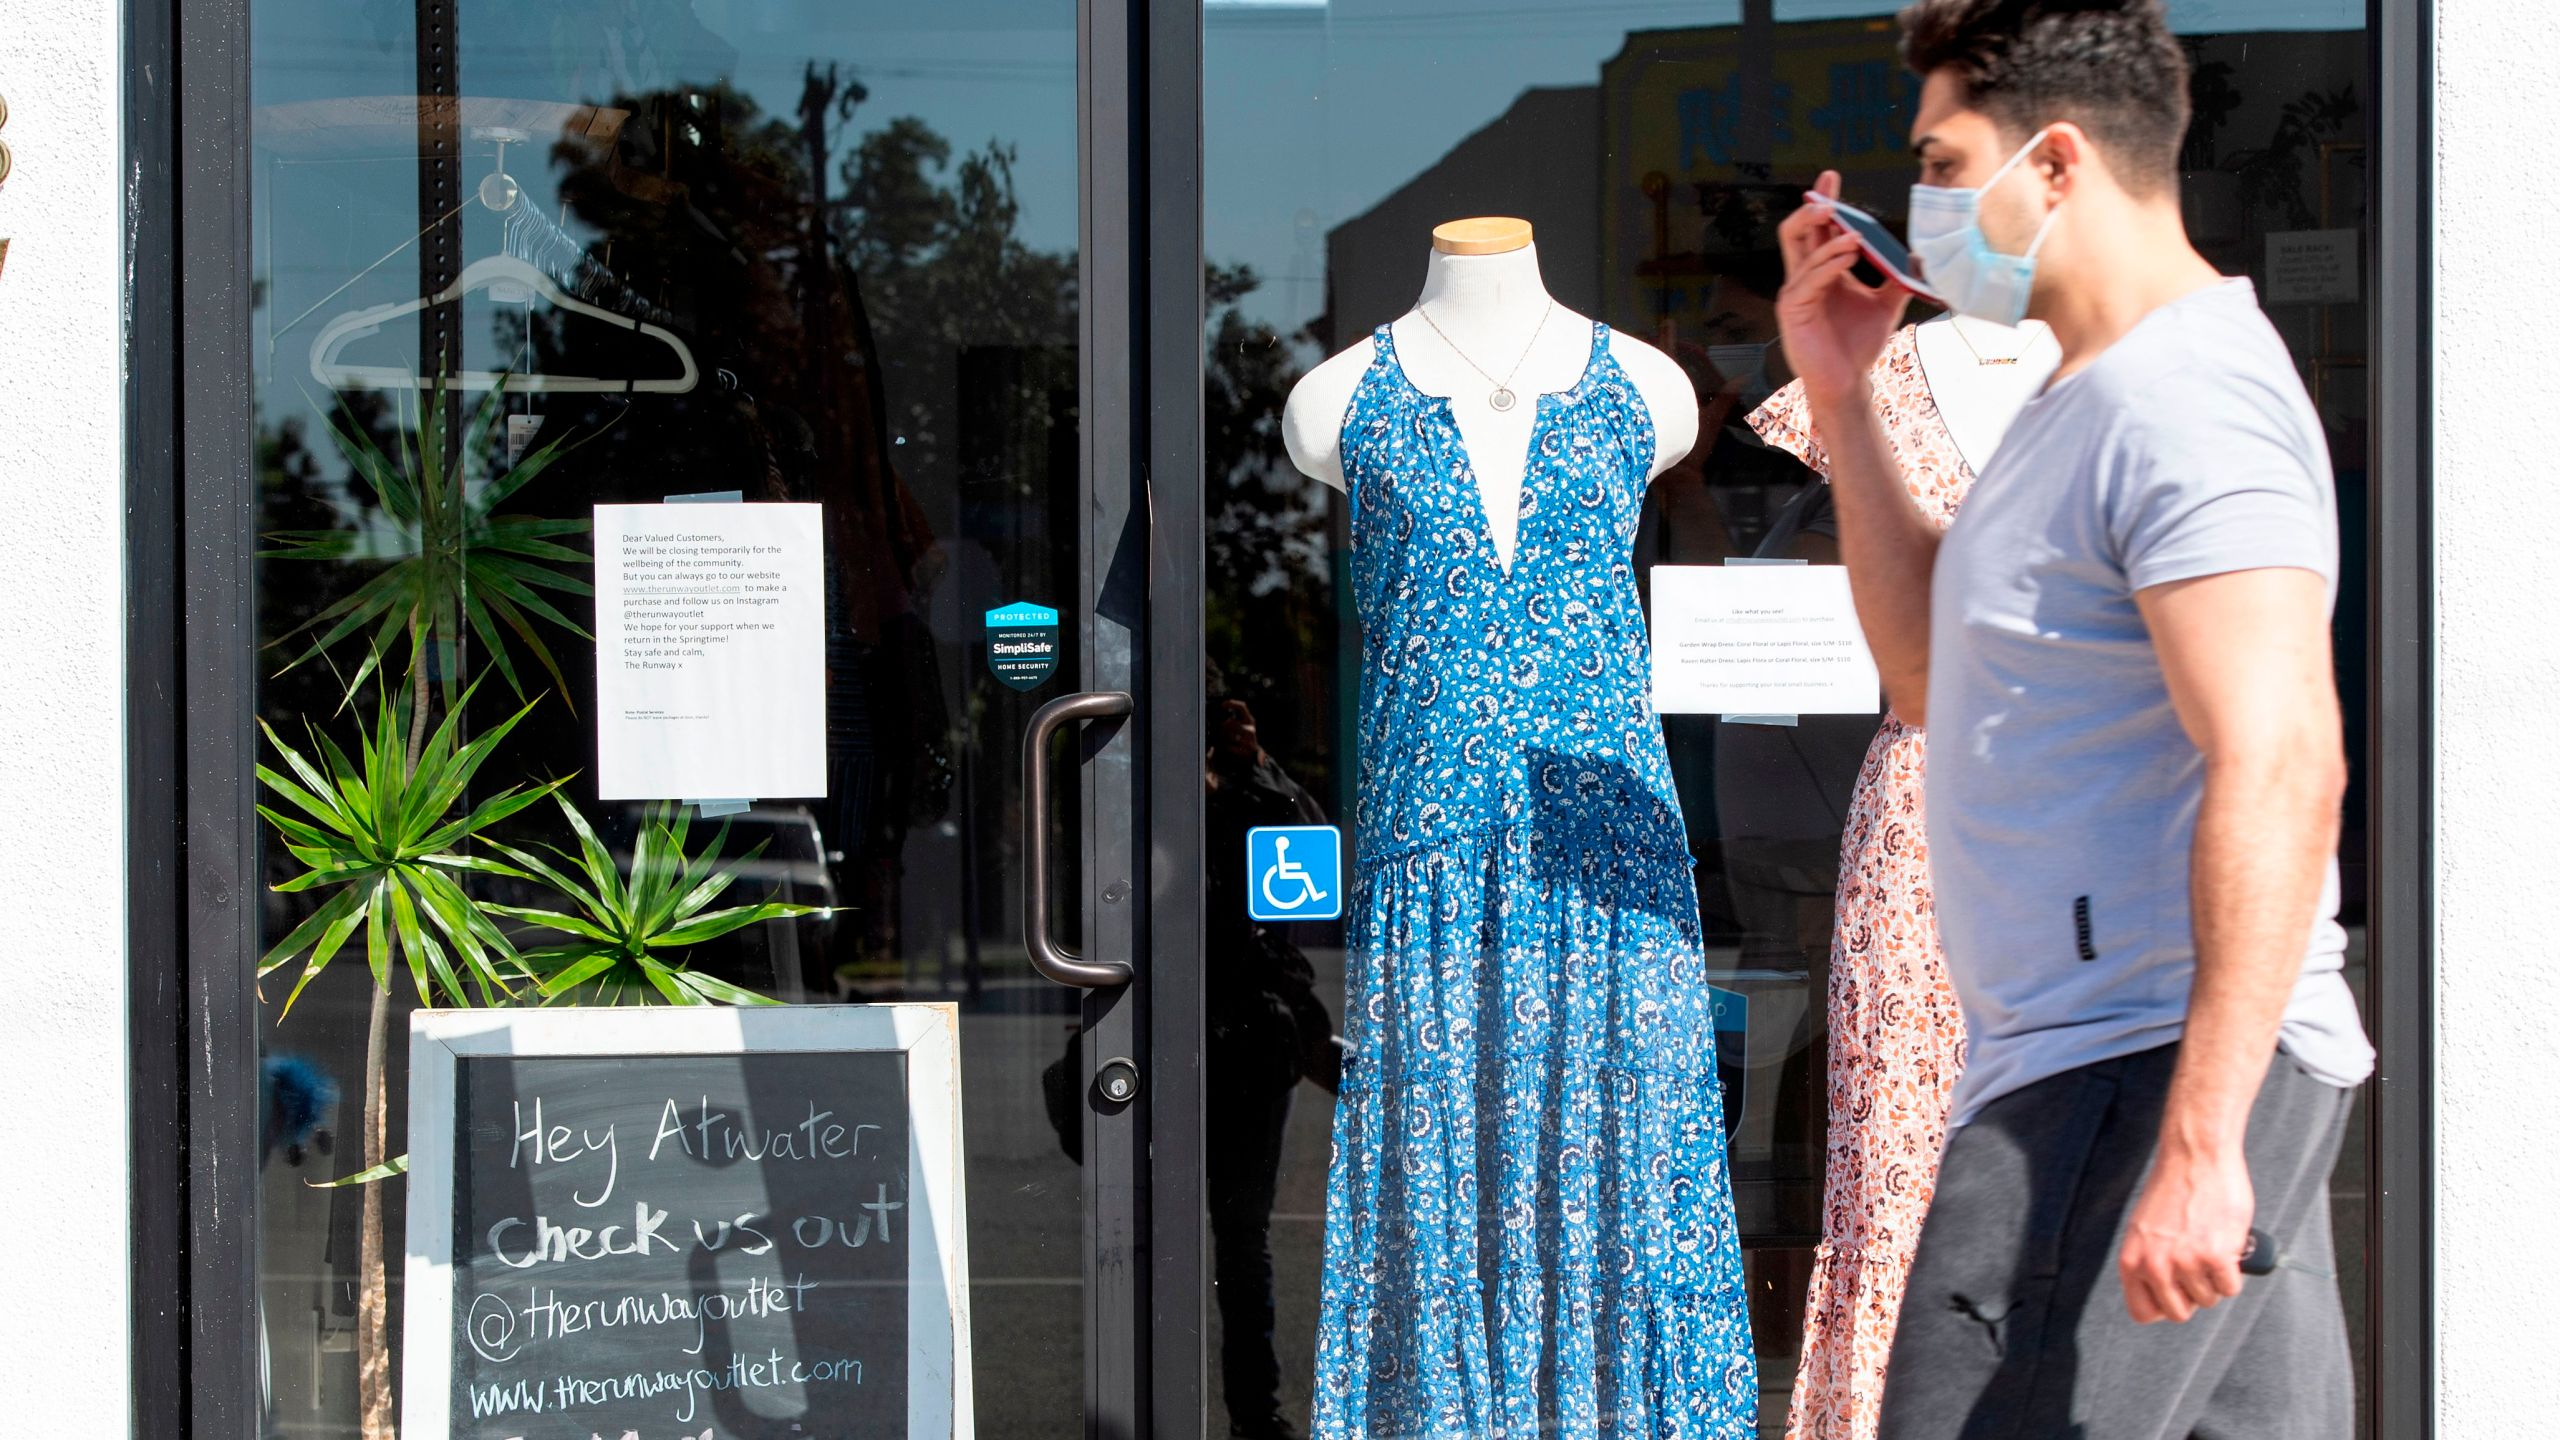 A sign displayed on the door tells the client that the shop is closed due to coronavirus amid the COVID- 19 pandemic, May 4, 2020, in Glendale, California. (VALERIE MACON/AFP via Getty Images)